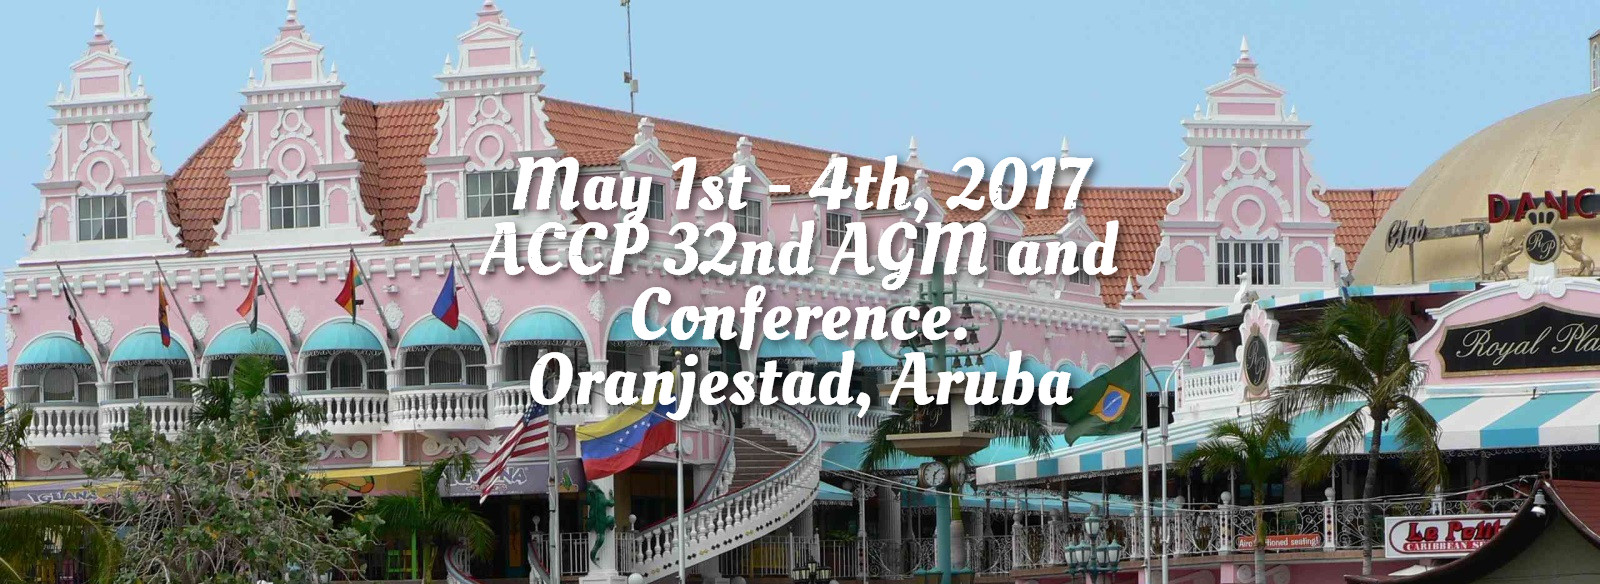 [IMAGE] ACCP 32nd AGM and Conference, Oranjsstad, Aruba